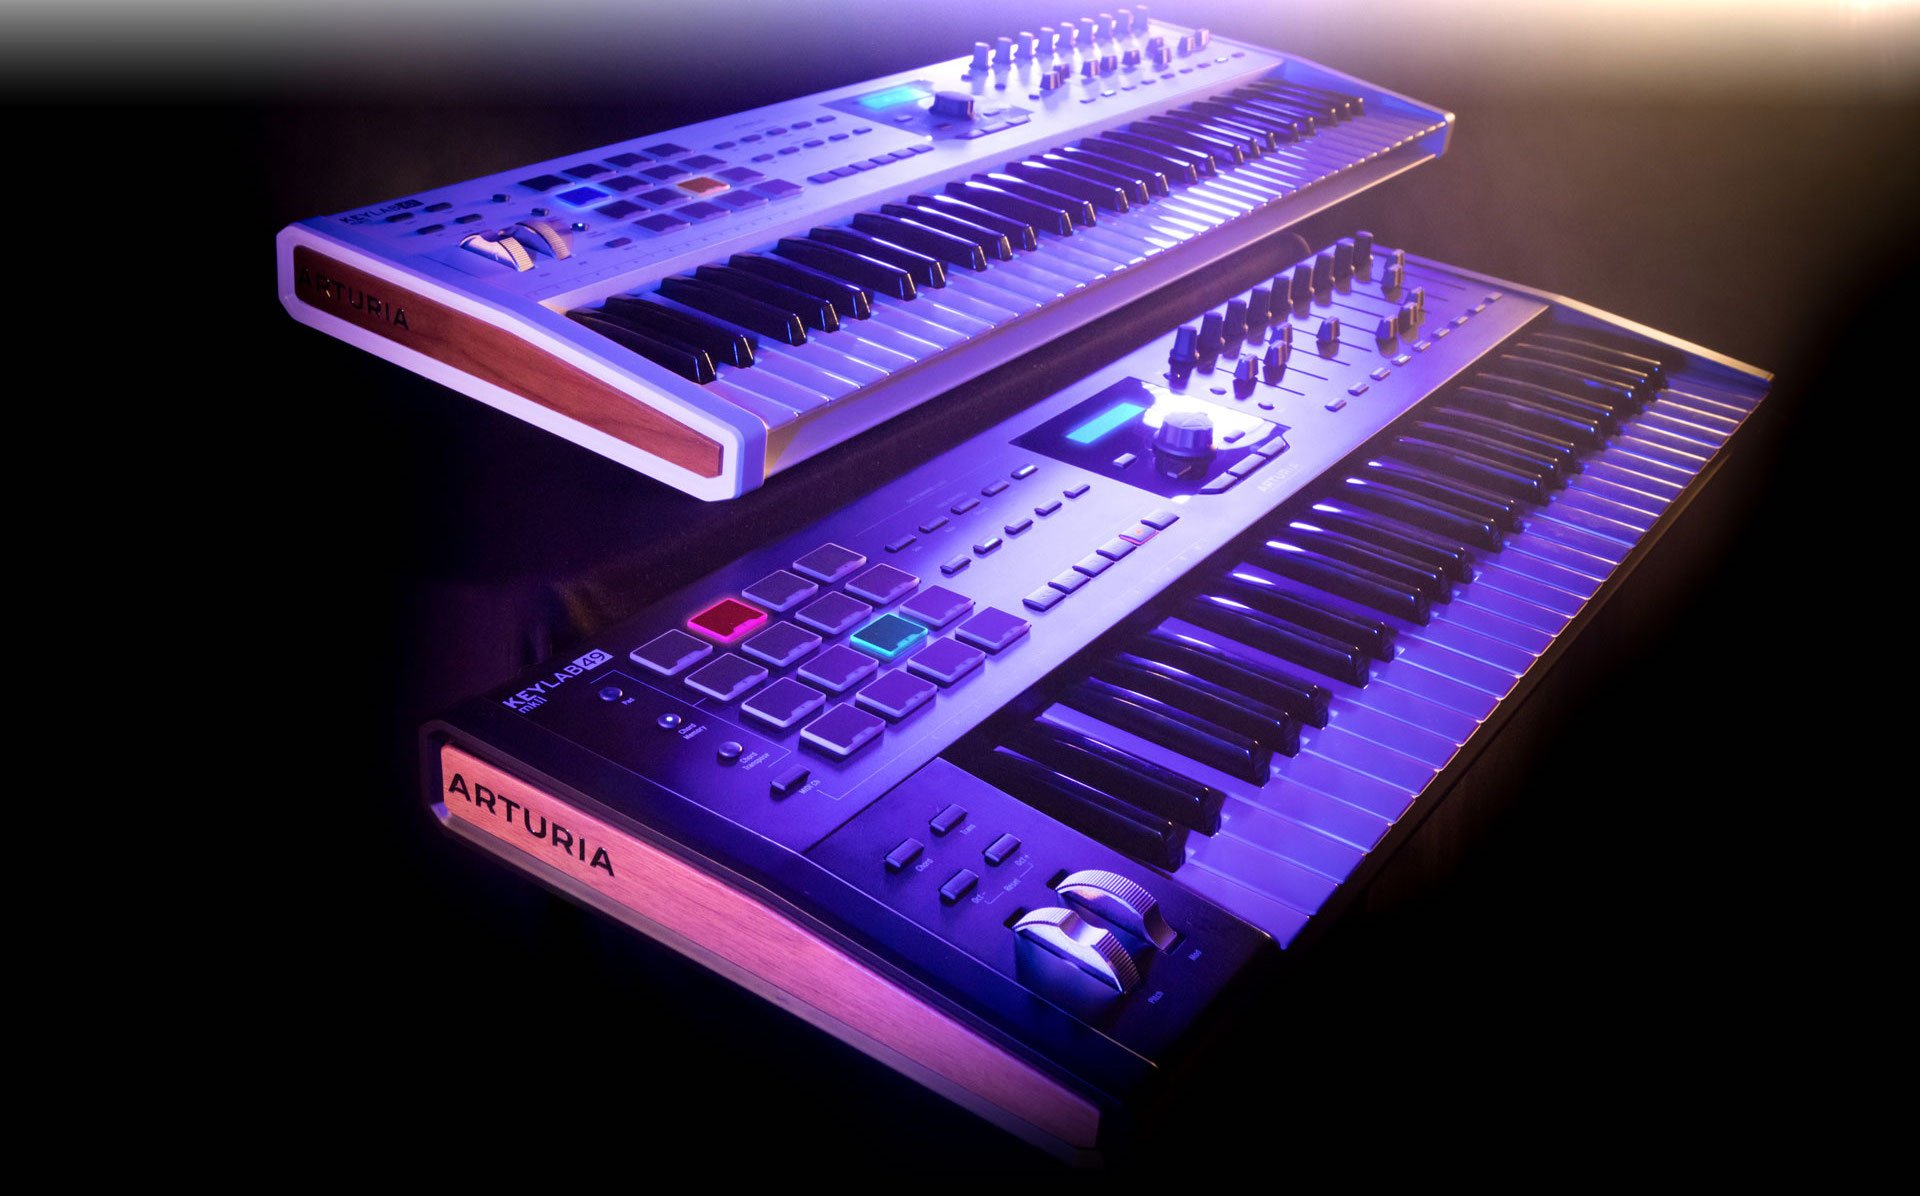 Reloaded twaddle – RT @EM_Magazine: @ArturiaOfficial has released the Keylab MKII controller keyboa...